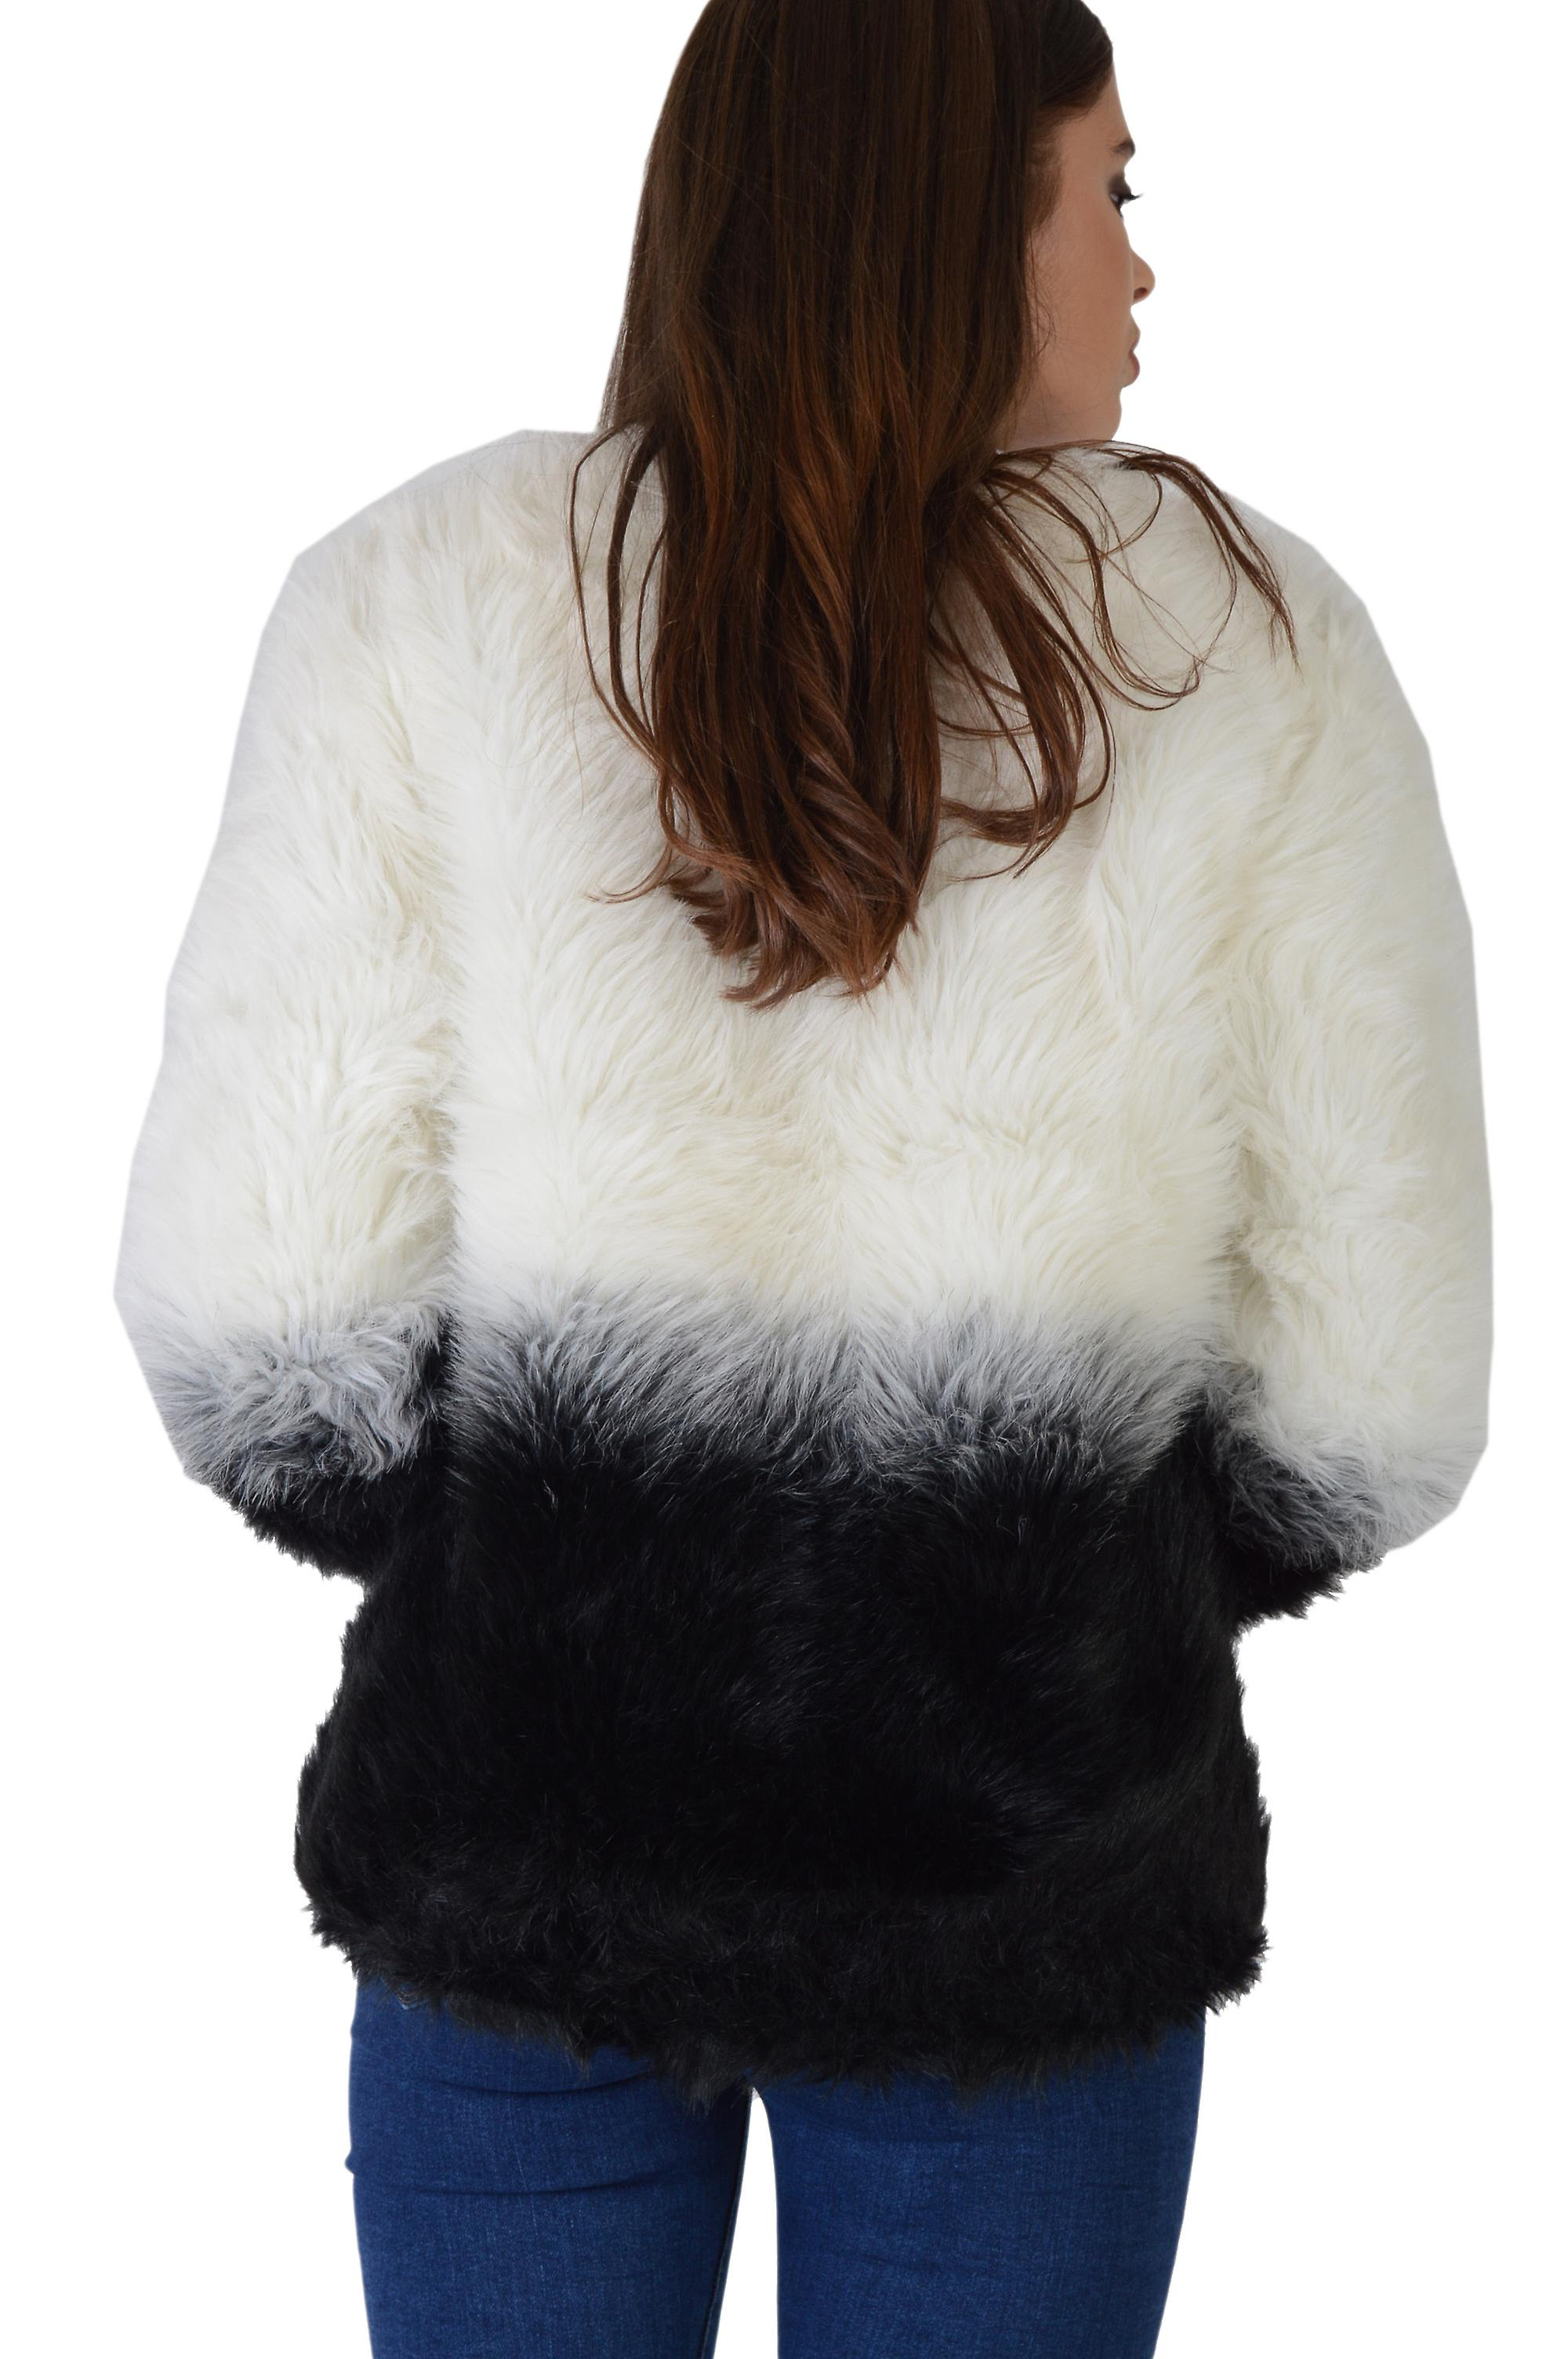 Lovemystyle White And Black Faux Fur Bomber Jacket